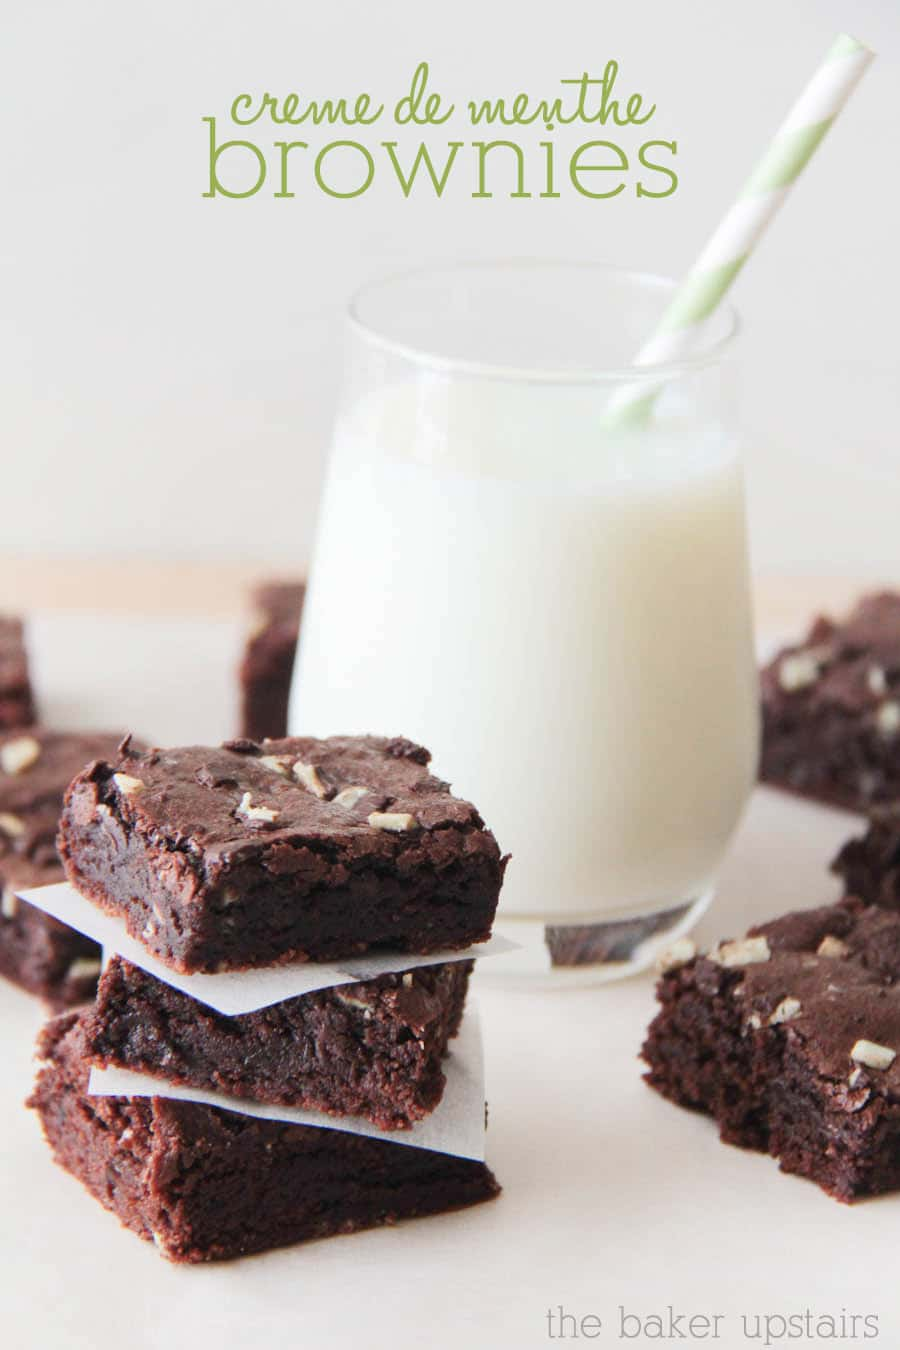 These mint brownies are so quick and easy to put together, but are still impressive enough to bring to a holiday party. Creme de Menthe Brownies just might be your new favorite treat! #cremedementhebrownies #easymintbrownies #mintchocolatebrownies #mintbrownierecipe #easycremedementhemintbrownies via @somewhatsimple